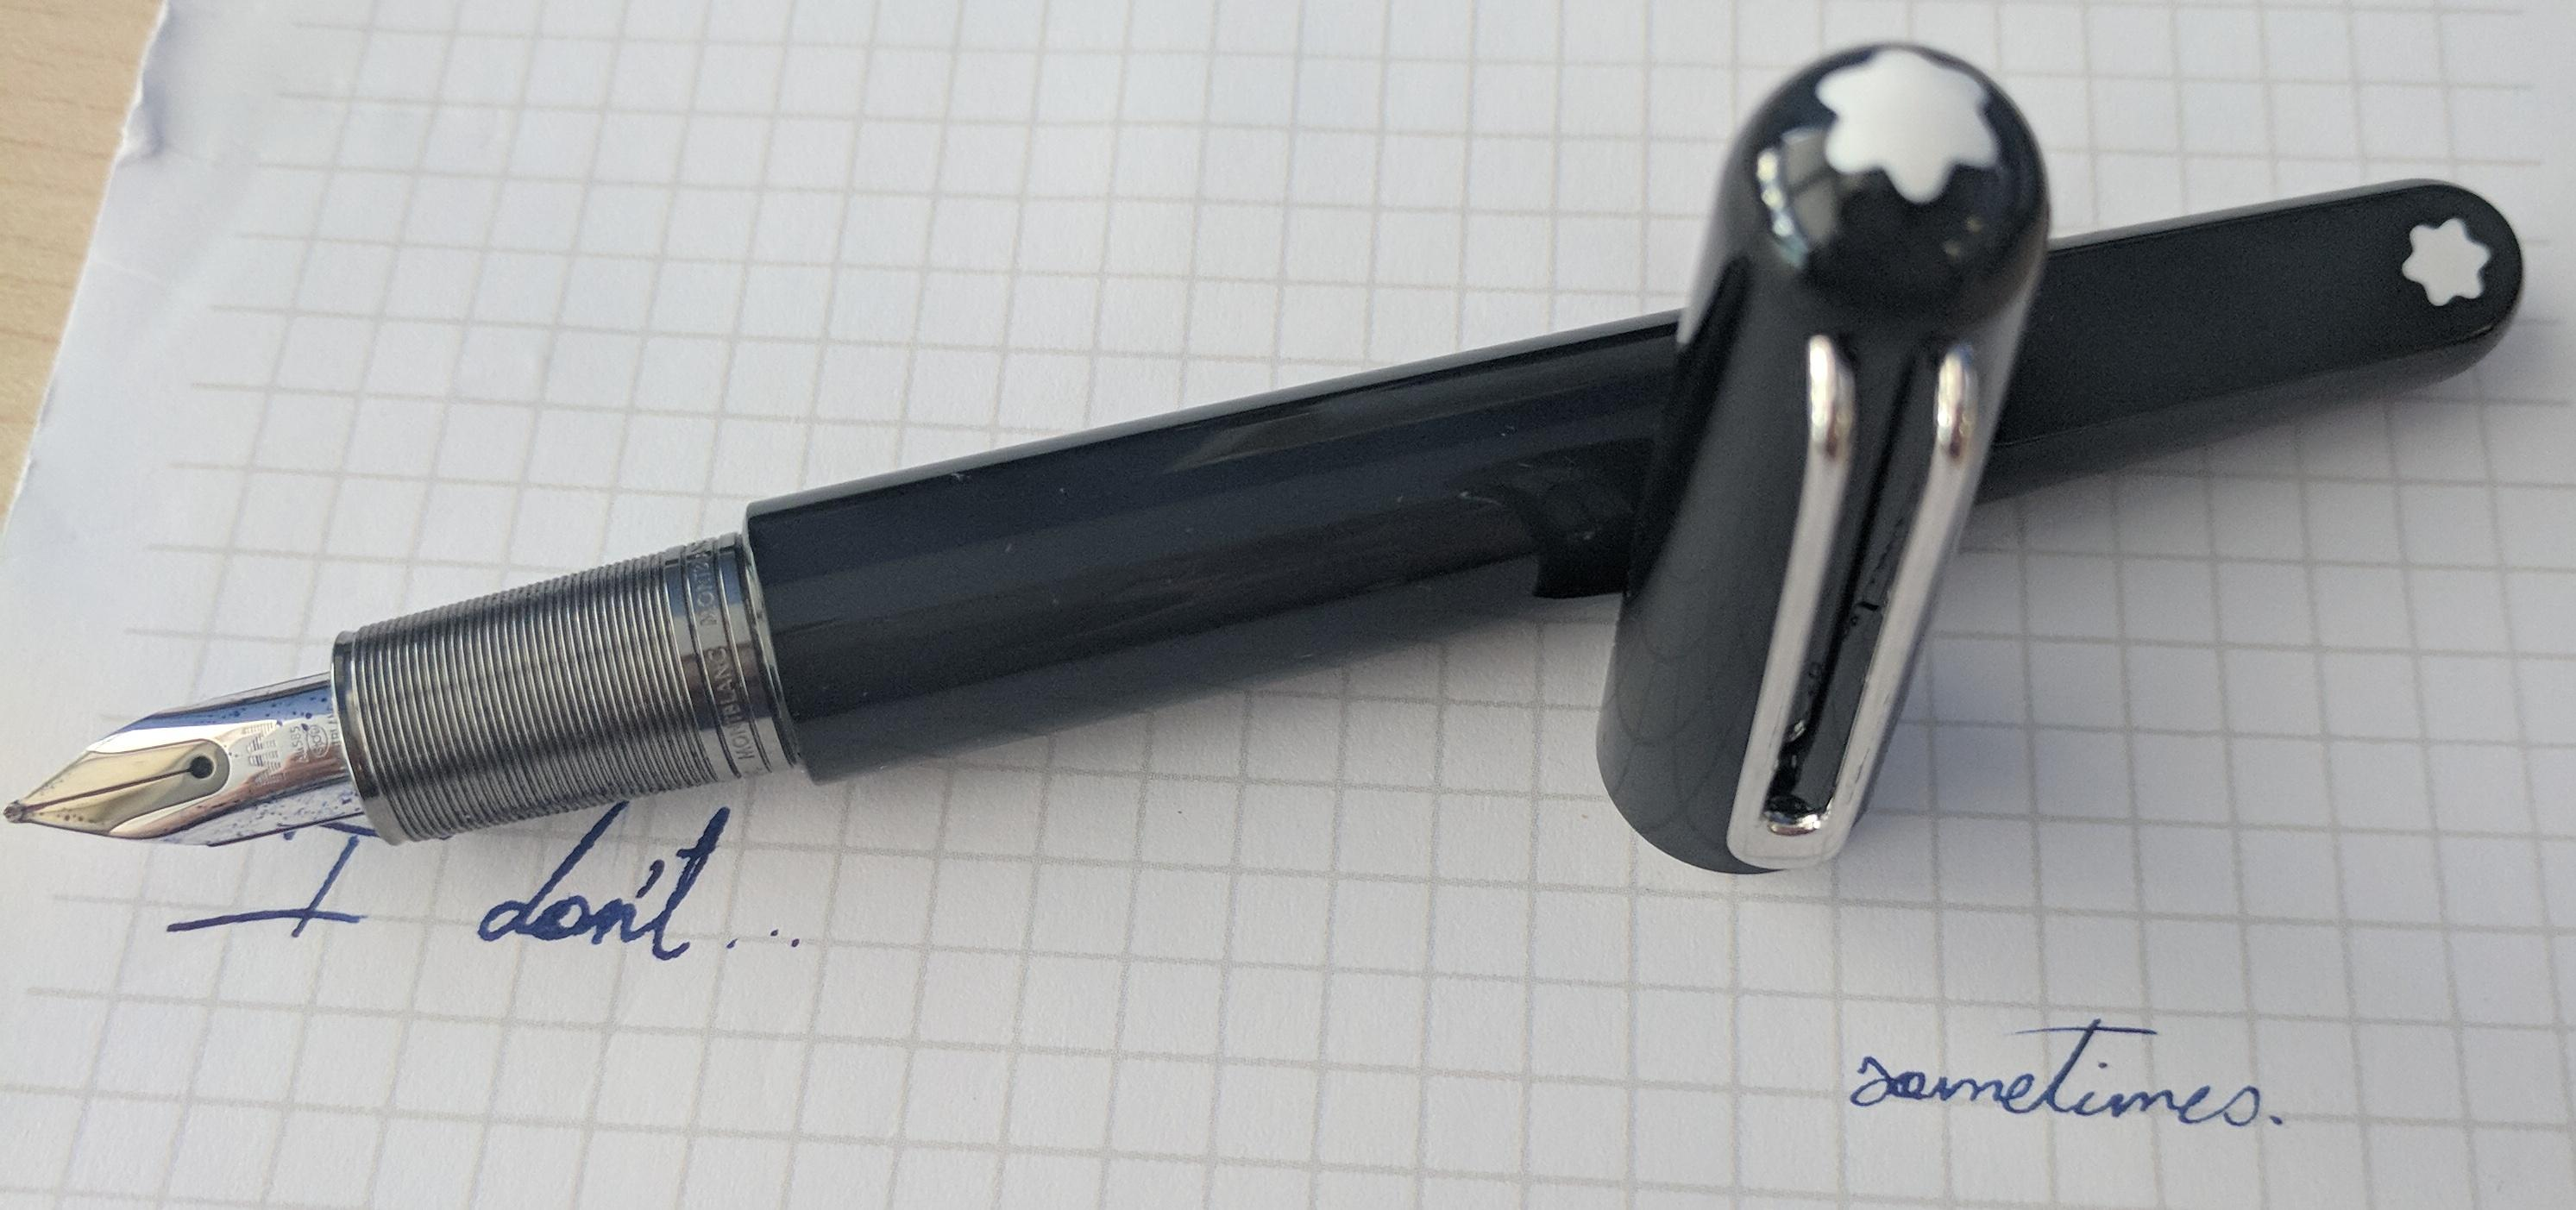 Calligraphy Pens B&m A Lot Of People Hate This Pen Fountainpens